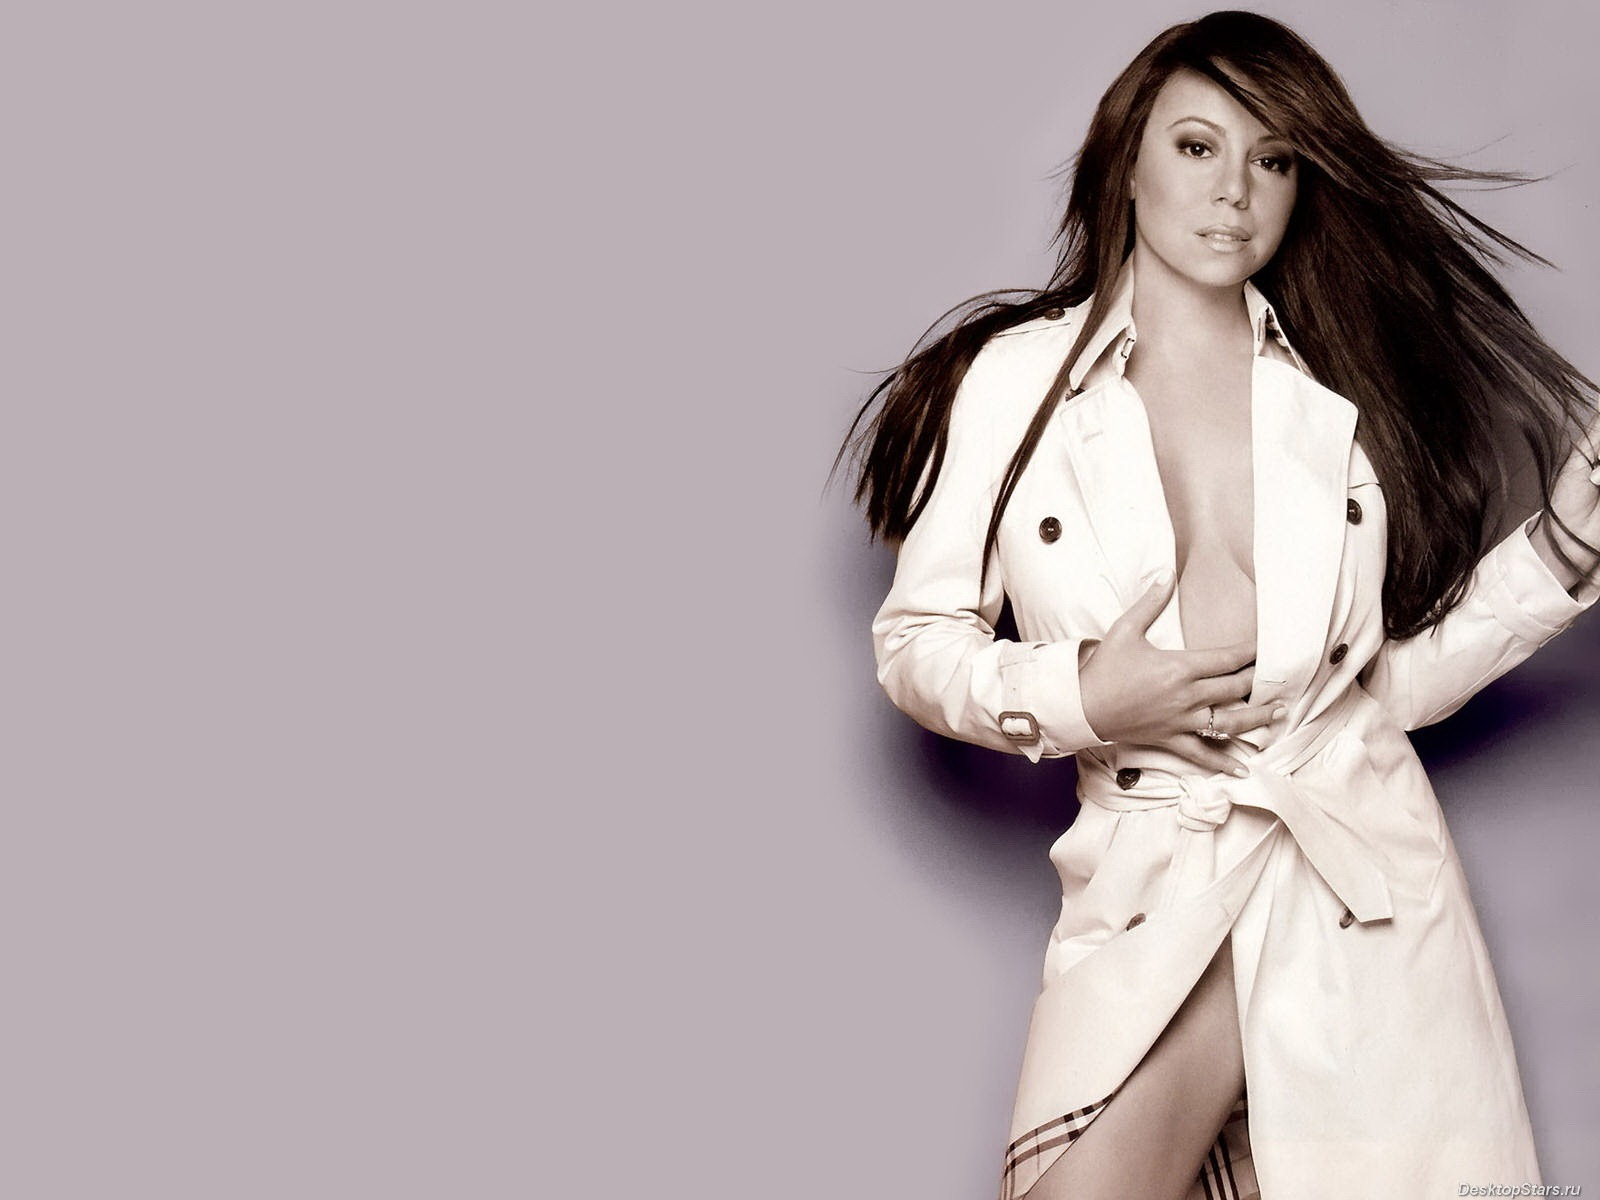 Mariah Carey #033 - 1600x1200 Wallpapers Pictures Photos Images